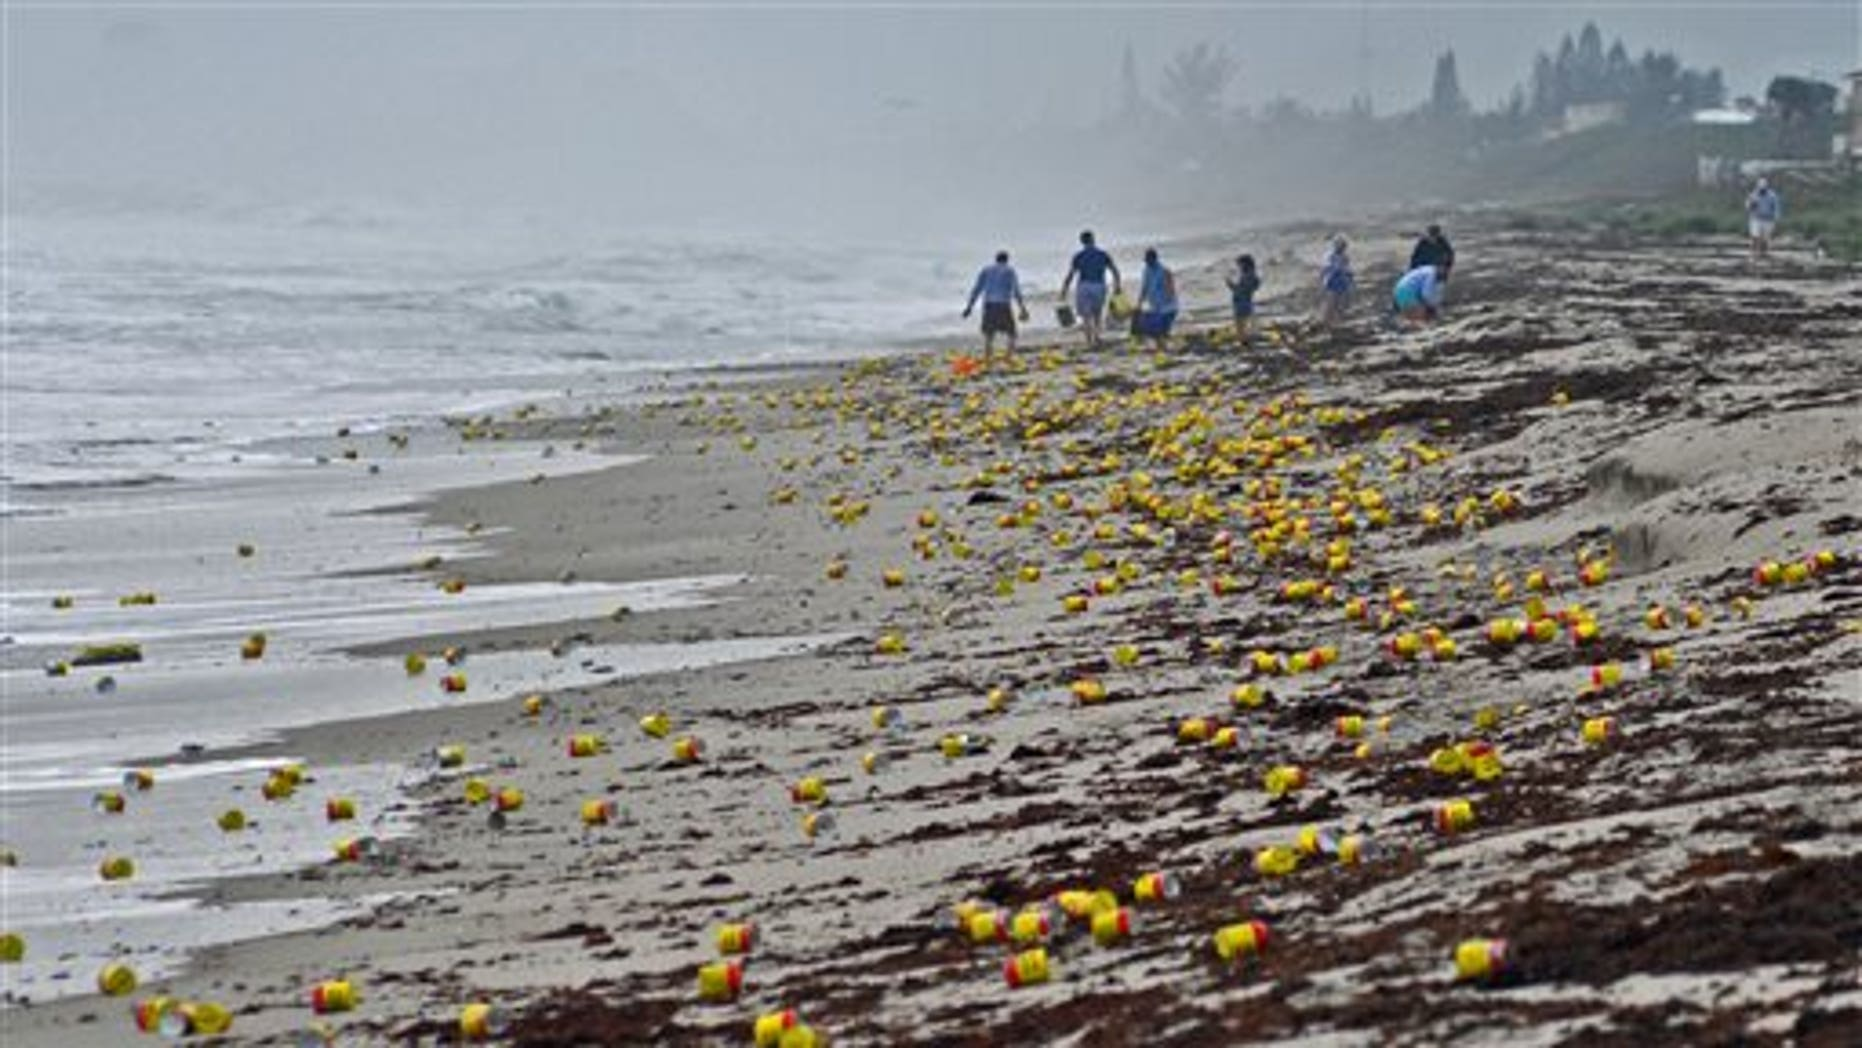 Thousands of cans and vacuum packed bricks of Cafe Bustelo brand coffee have washed up on the beaches of Indialantic, Fla., on Tuesday, Dec. 8, 2015, most likely from a barge container that had fallen overboard this past weekend. The coffee began washing ashore along an area over a mile long in Brevard County, on the east coast of Cental Florida. People began cleaning up the mess, or decided to enjoy some free java. (Tim Shortt/Florida Today via AP)